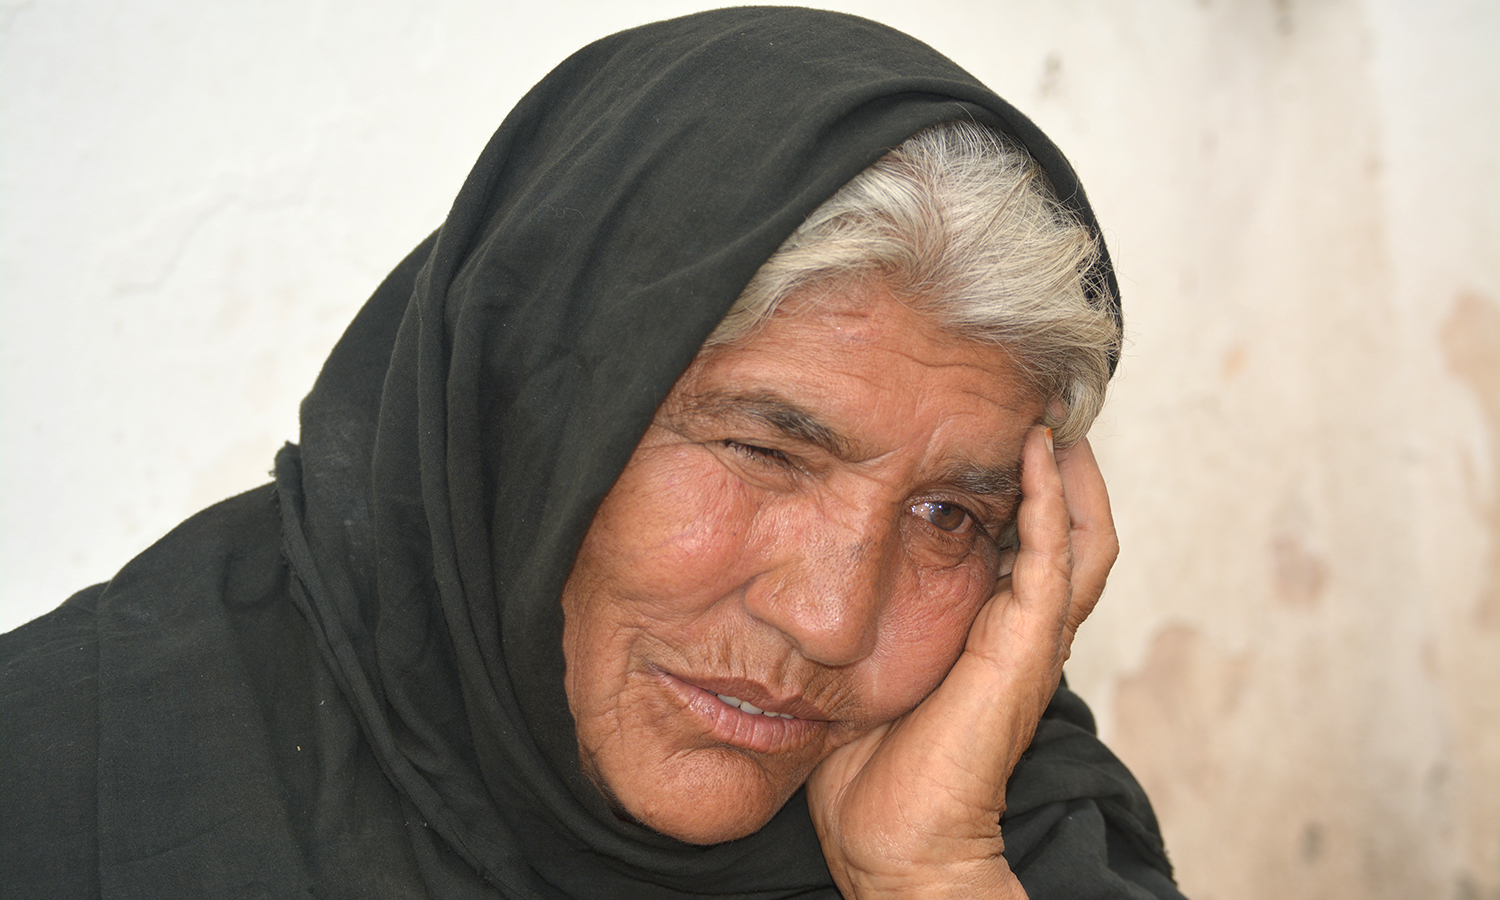 A woman whose goods were confiscated waits outside the Hayatabad police station.